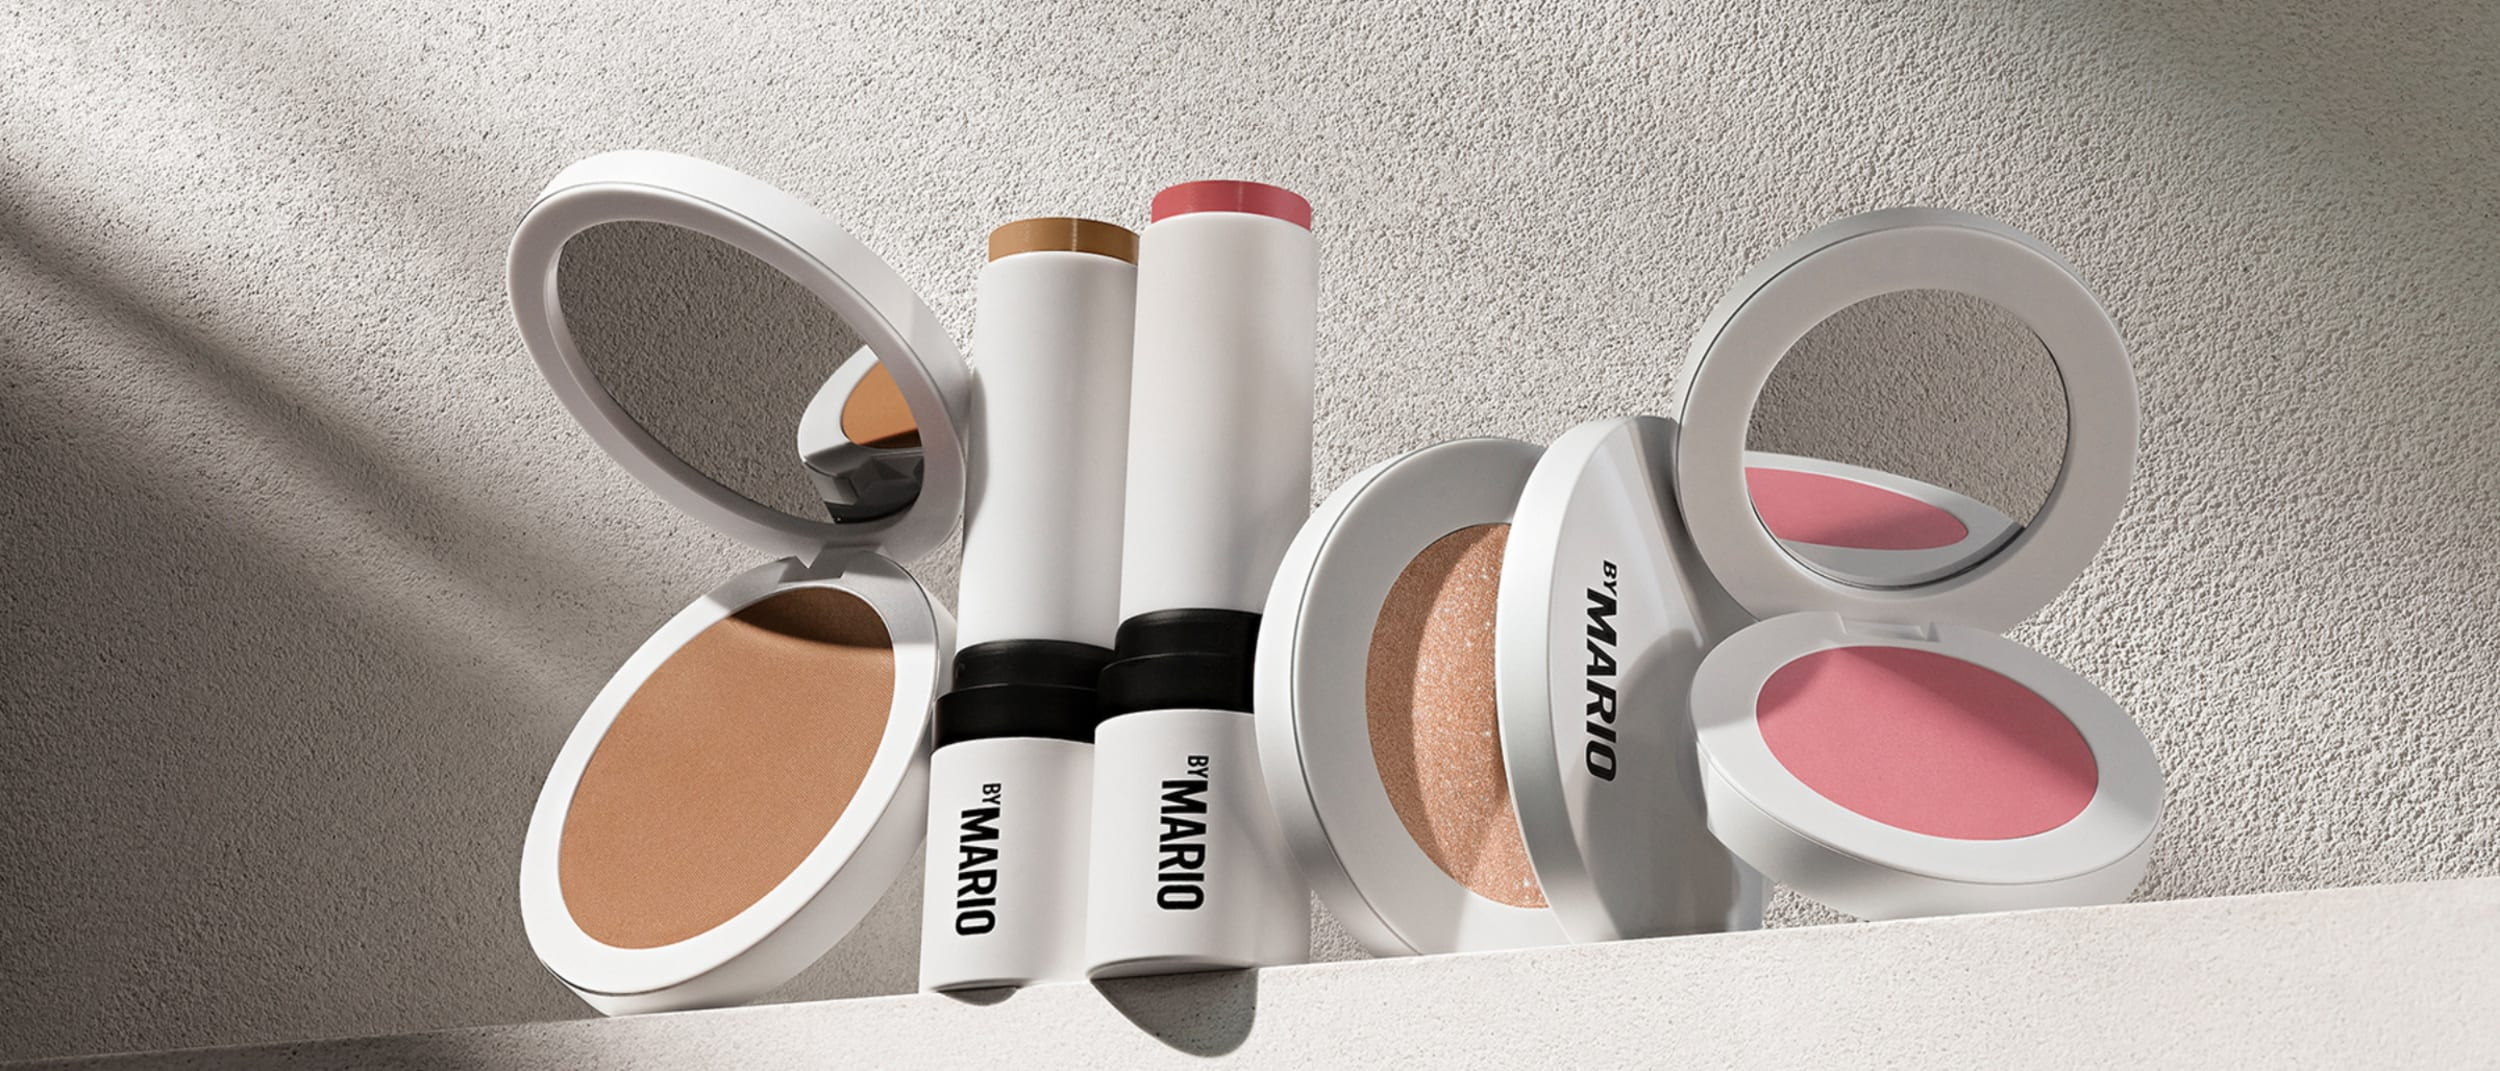 Sephora: Makeup By Mario is HERE!